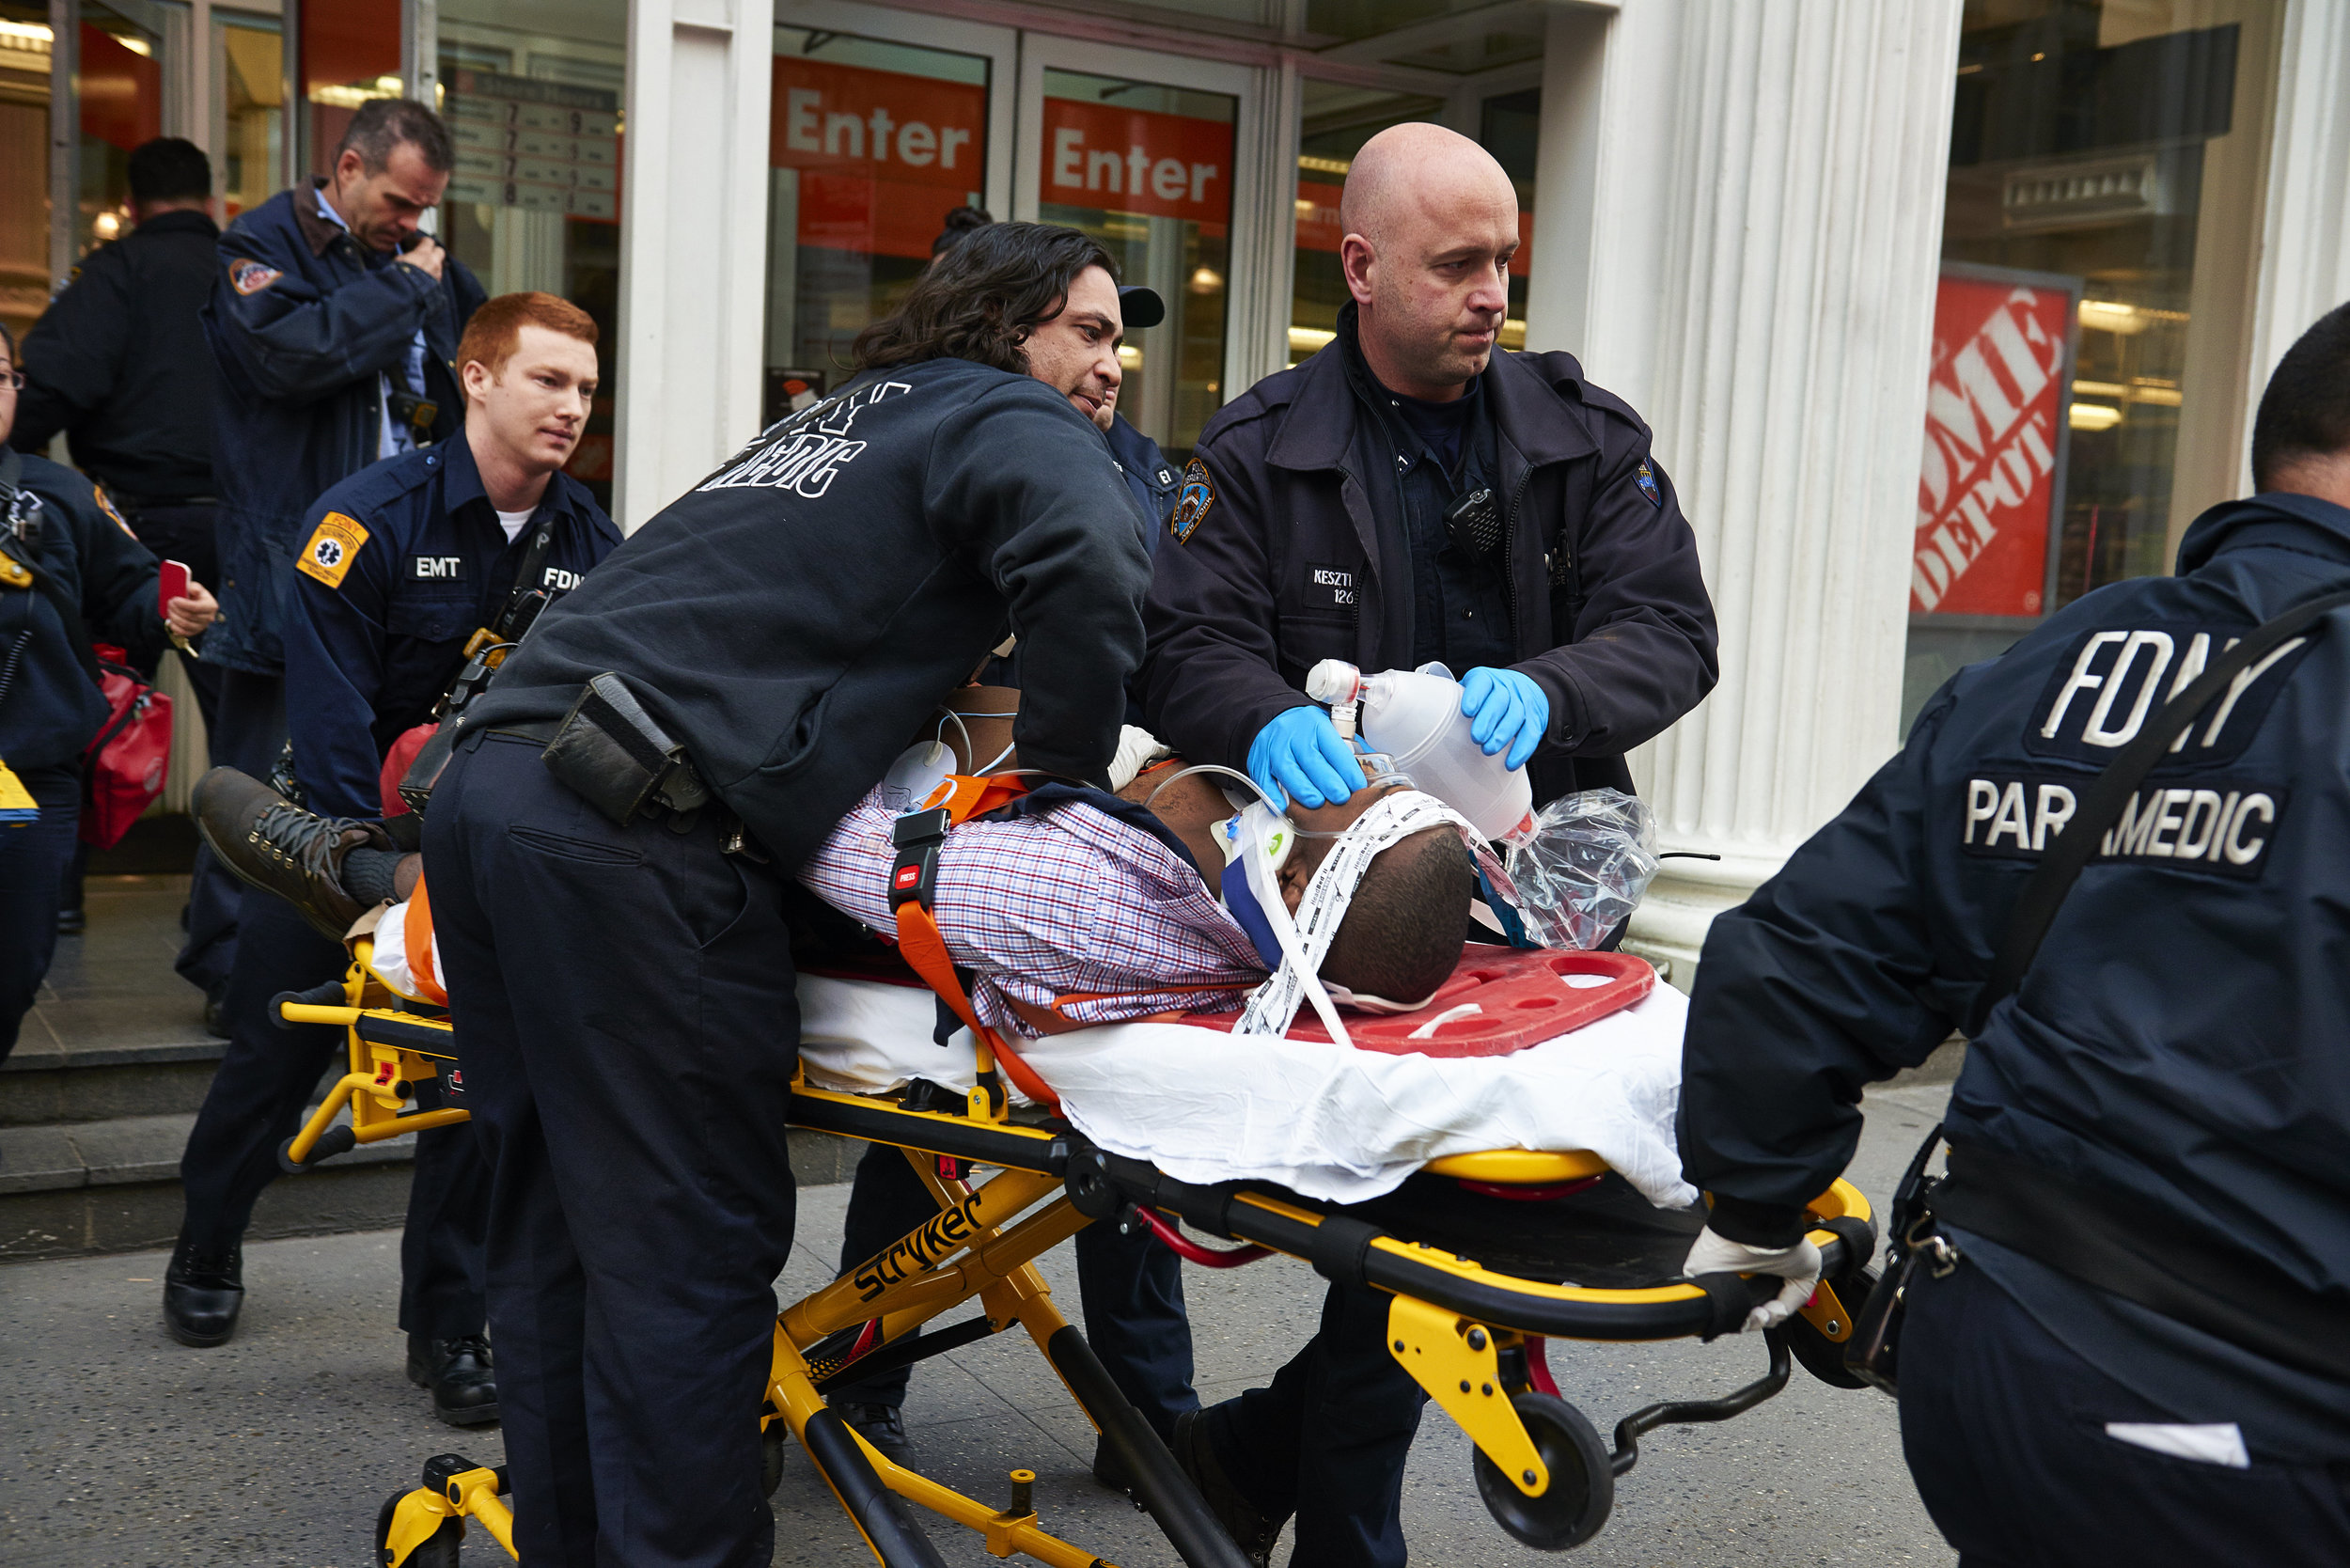 A shooting victim is transported to the hospital after one person was shot dead at a fatal shooting at a Home Depot store in midtown Manhattan on Sunday, January 25, 2015 in New York, N.Y.